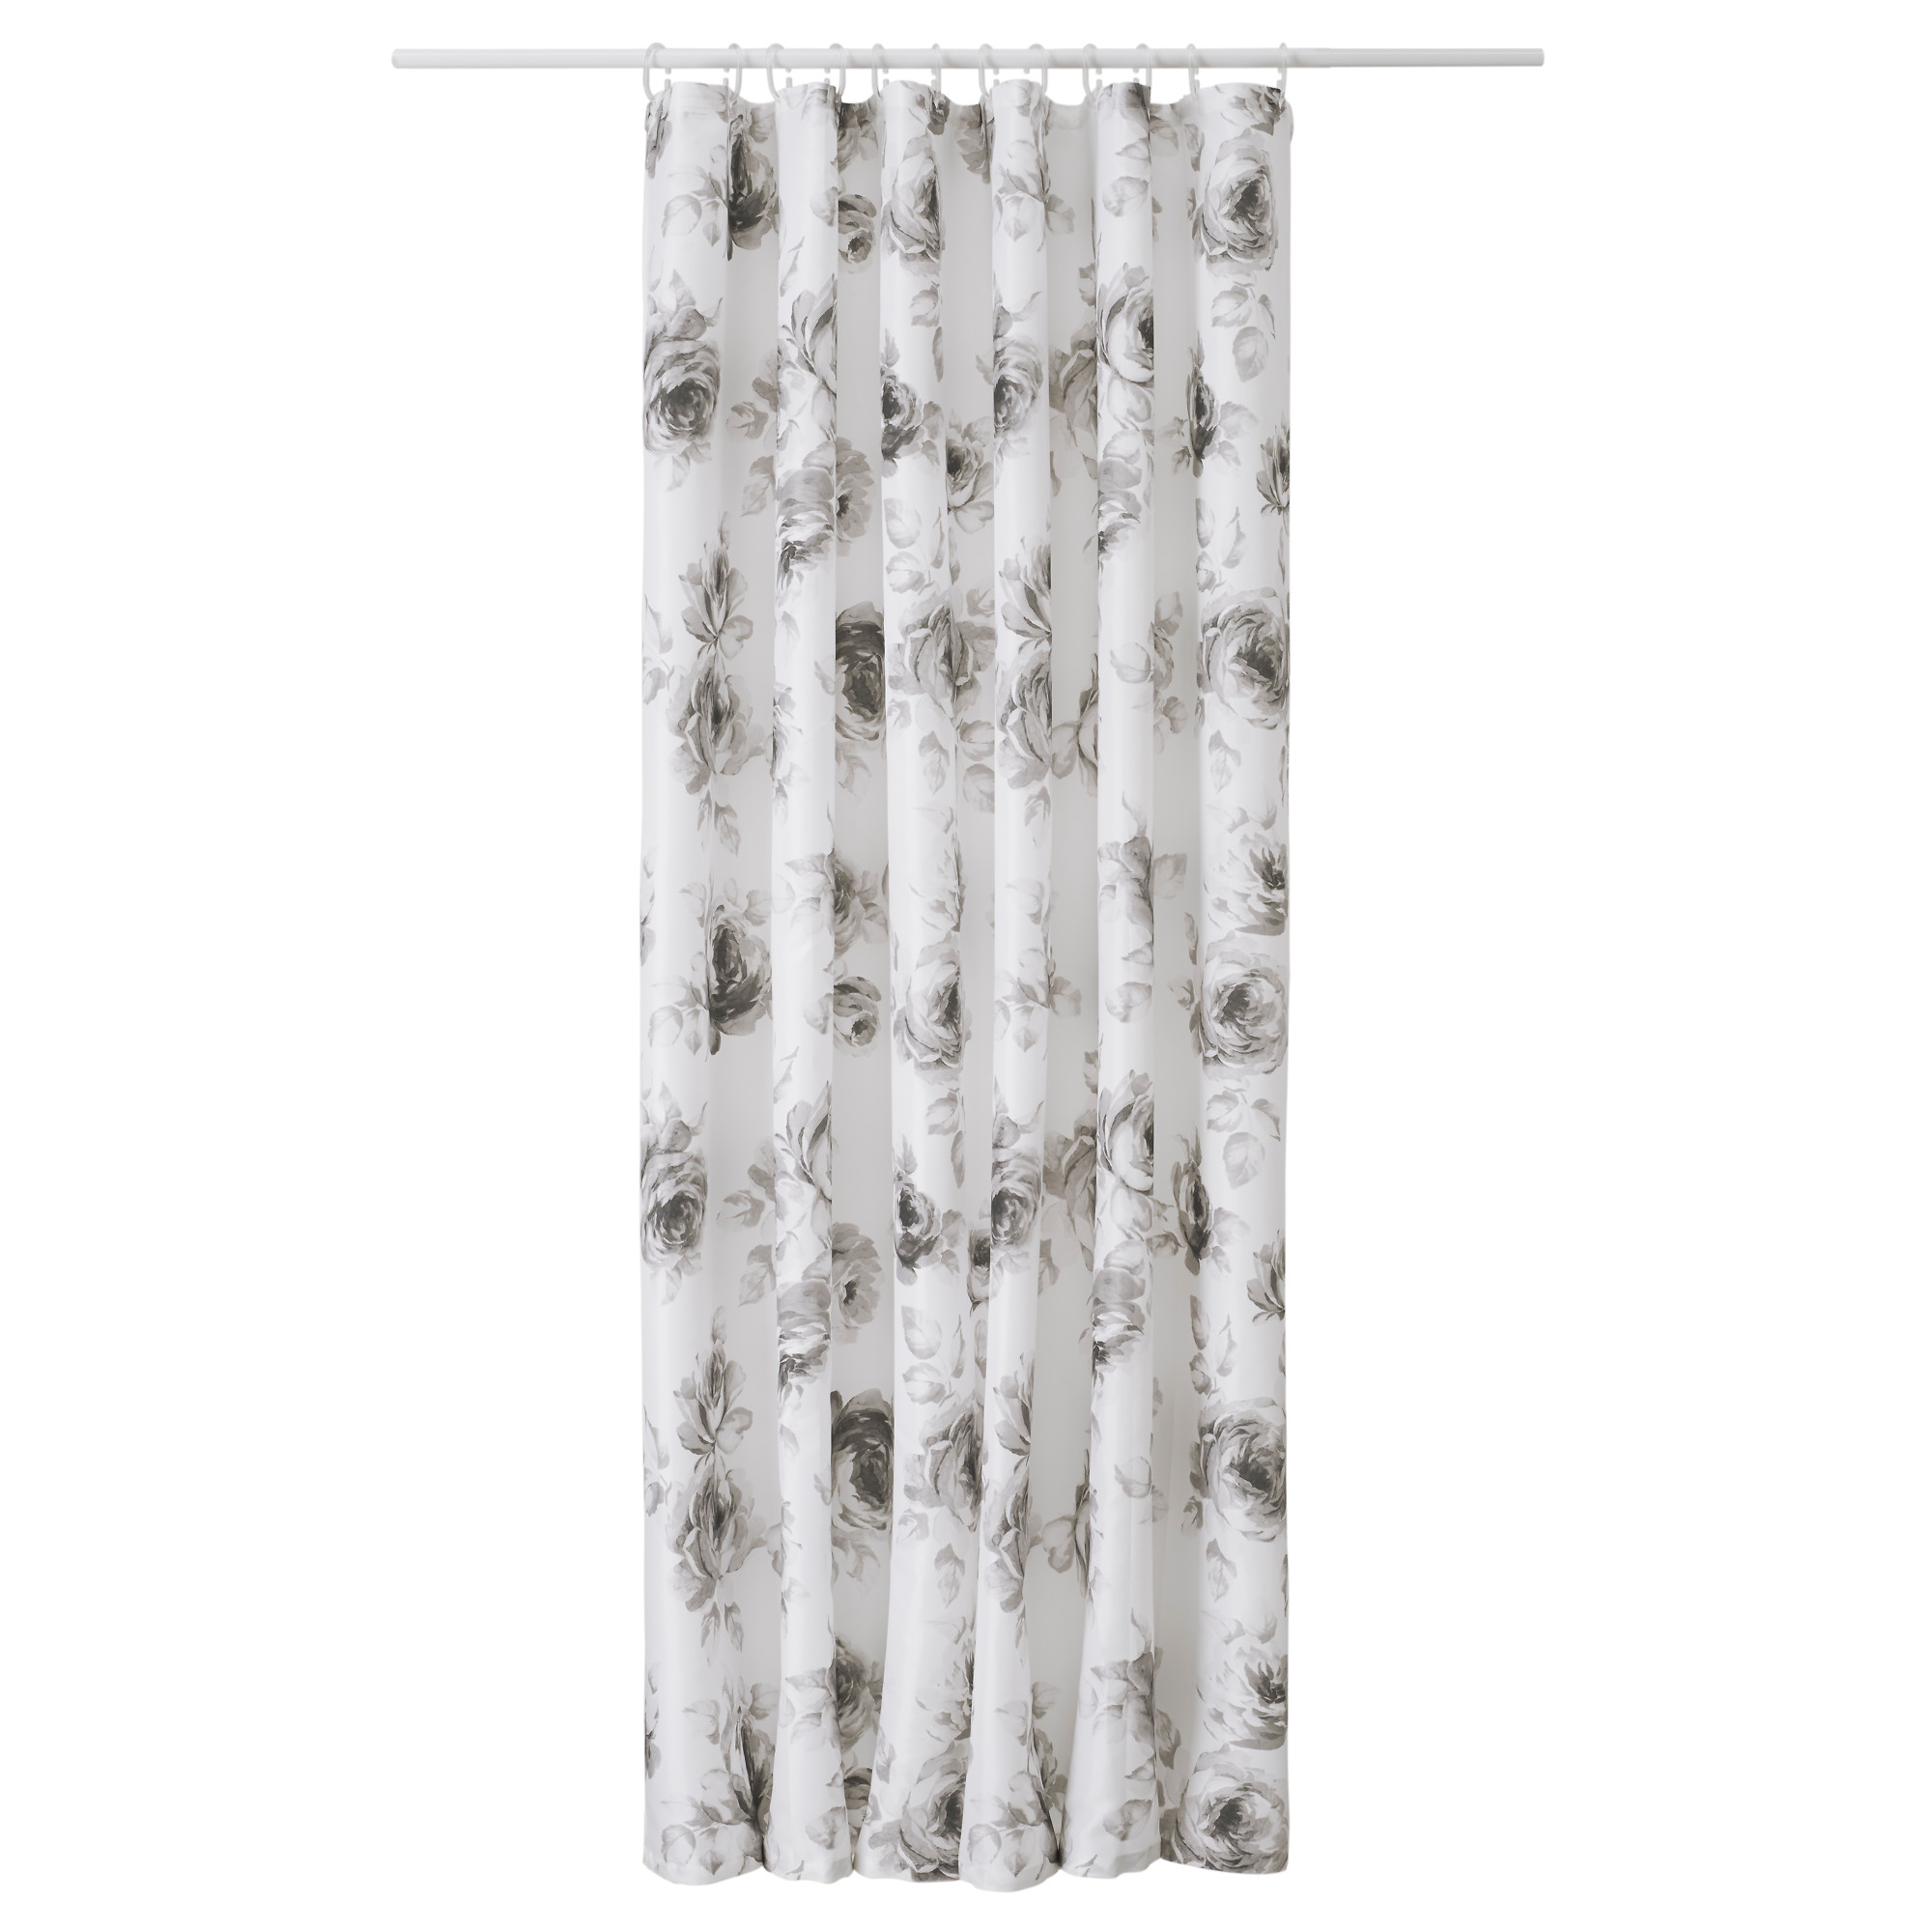 Single Stall Shower Curtain | Transparent Shower Curtain | Ikea Shower Curtain